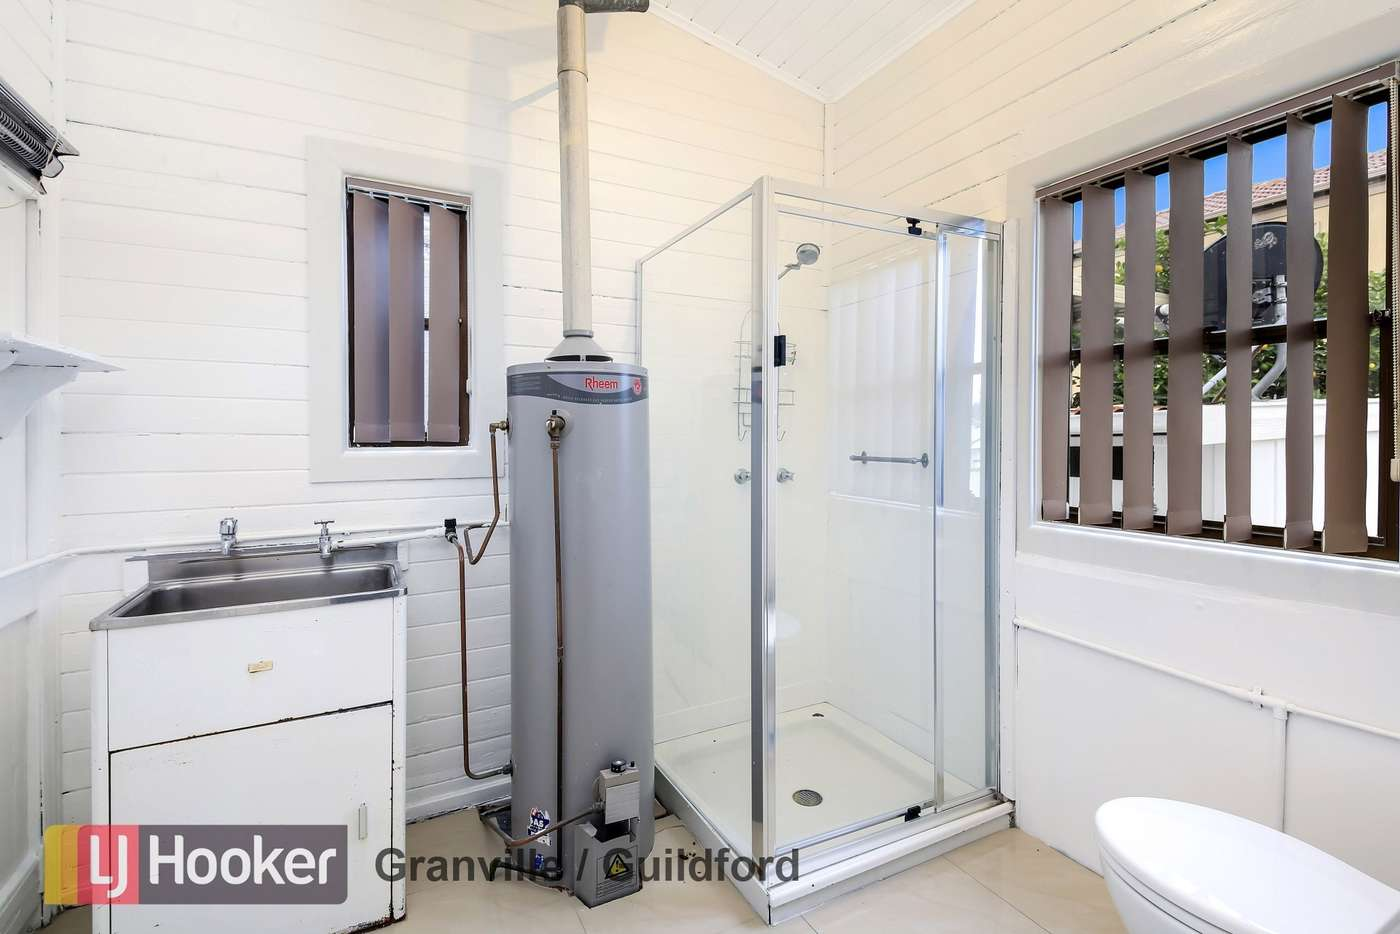 Sixth view of Homely house listing, 107 The Avenue, Granville NSW 2142